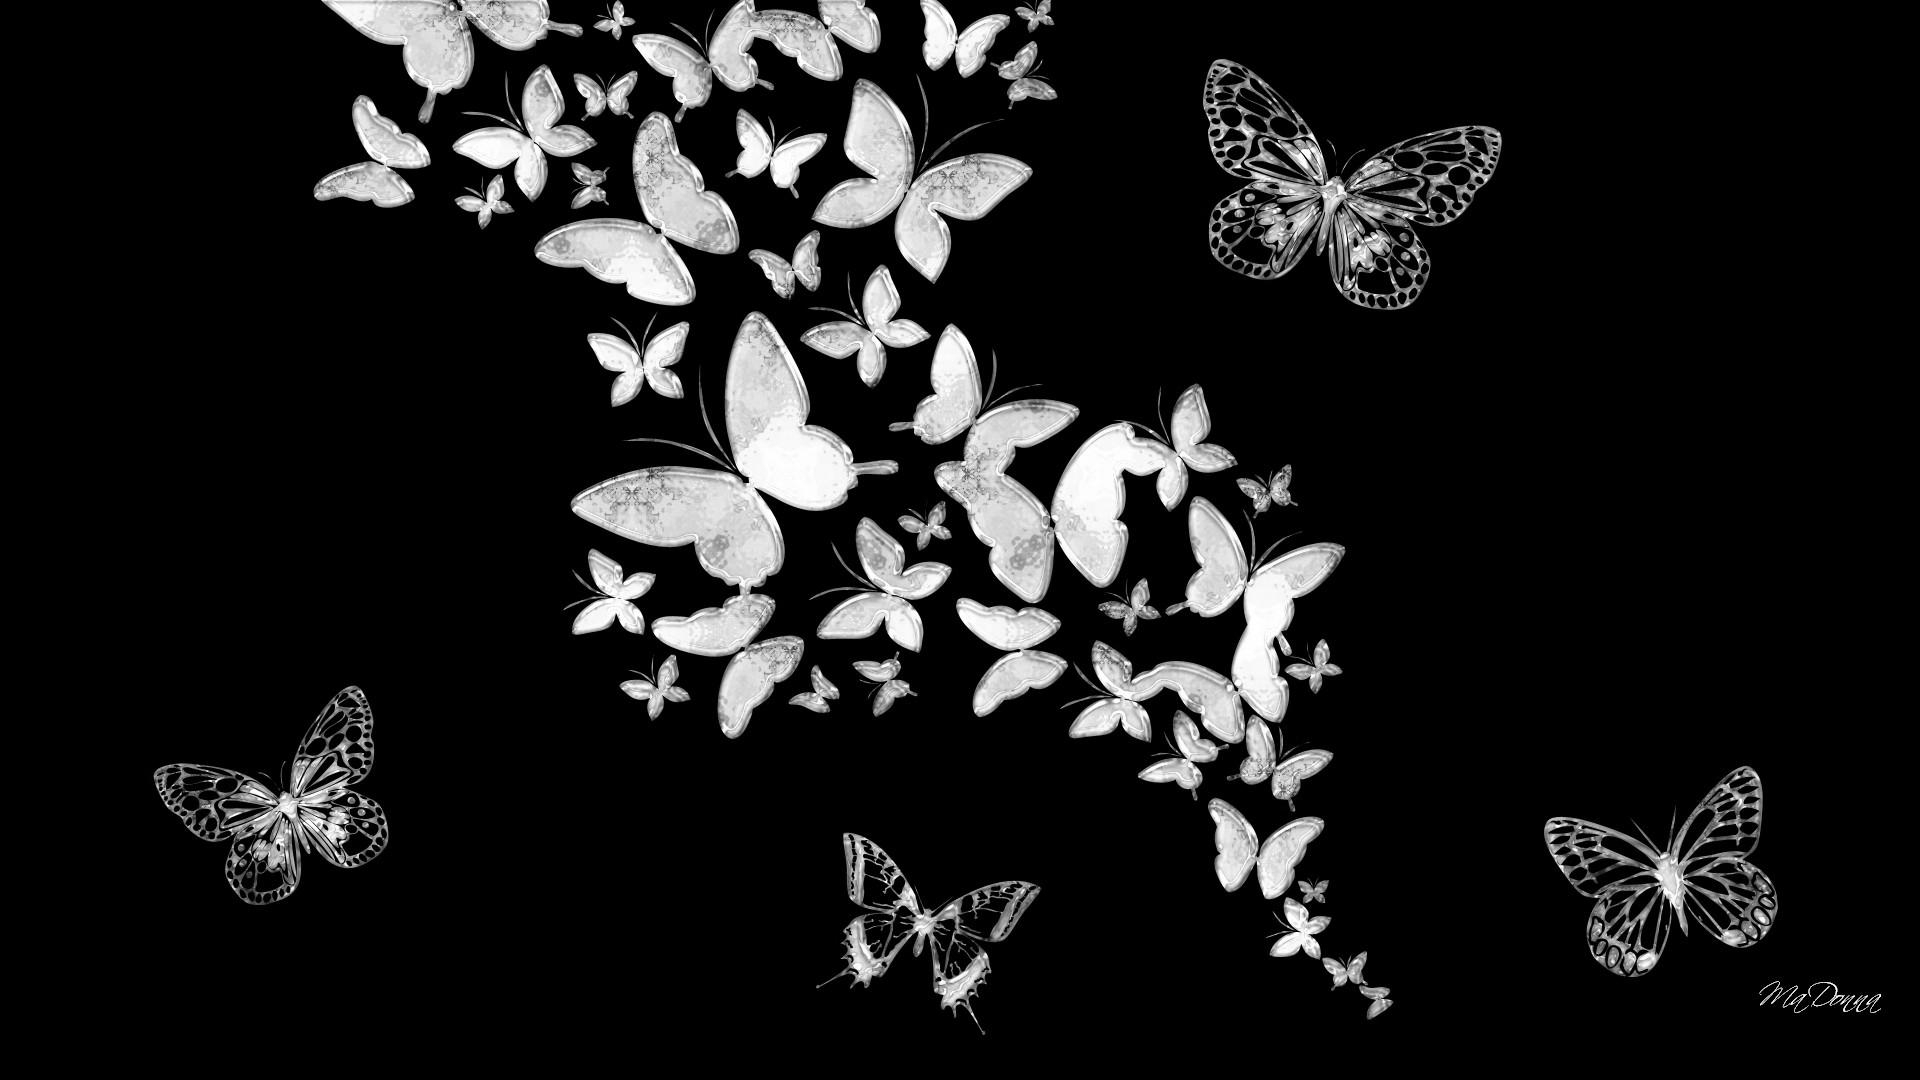 butterfly wallpaper black and white - top backgrounds & wallpapers